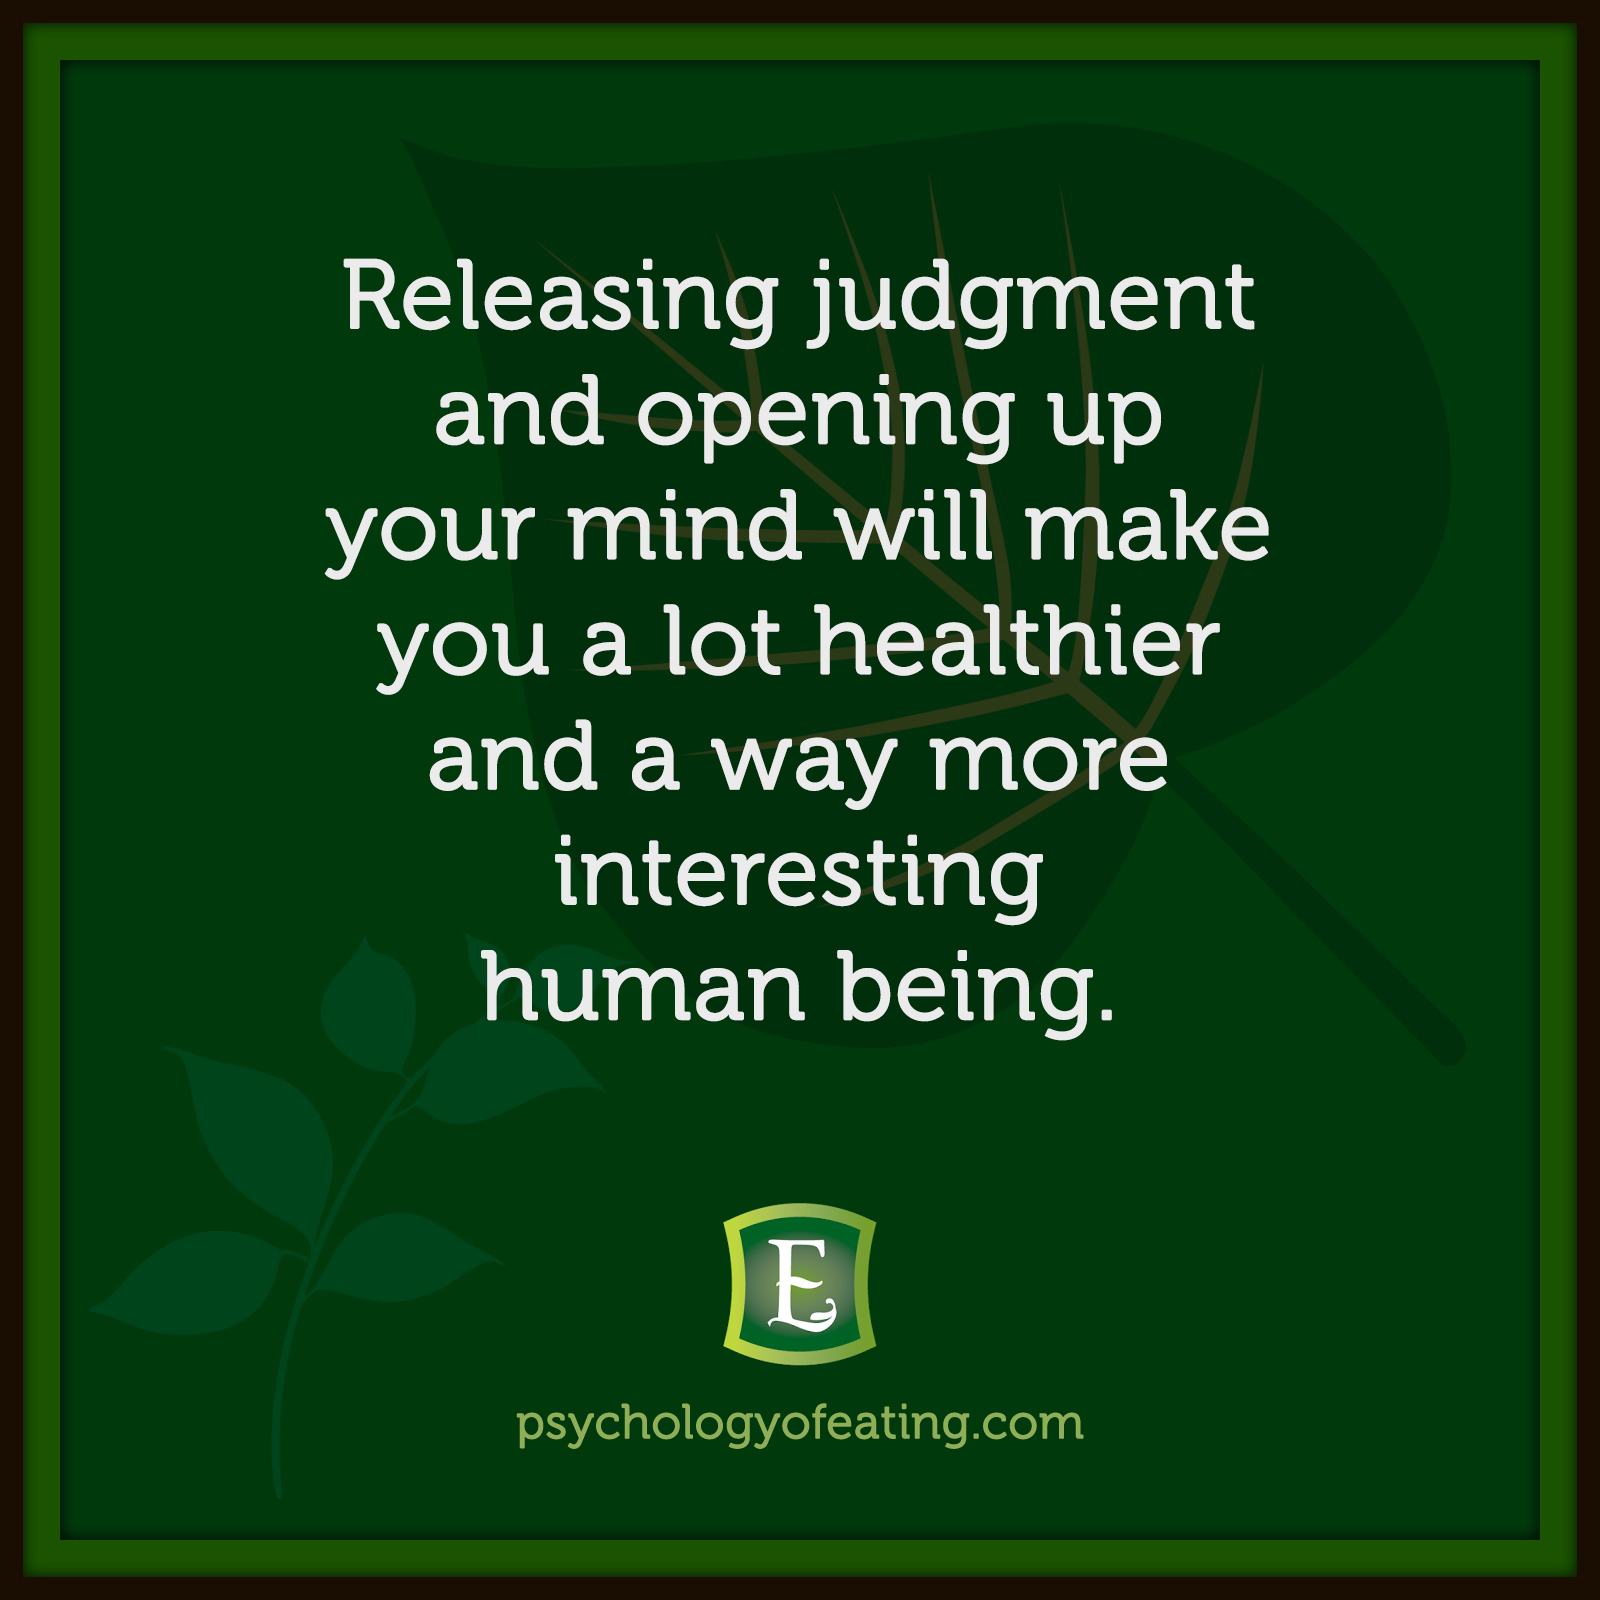 Releasing judgment and opening up your mind will make you a lot healthier and a way more interesting human being. #health #nutrition #eatingpsychology #IPE